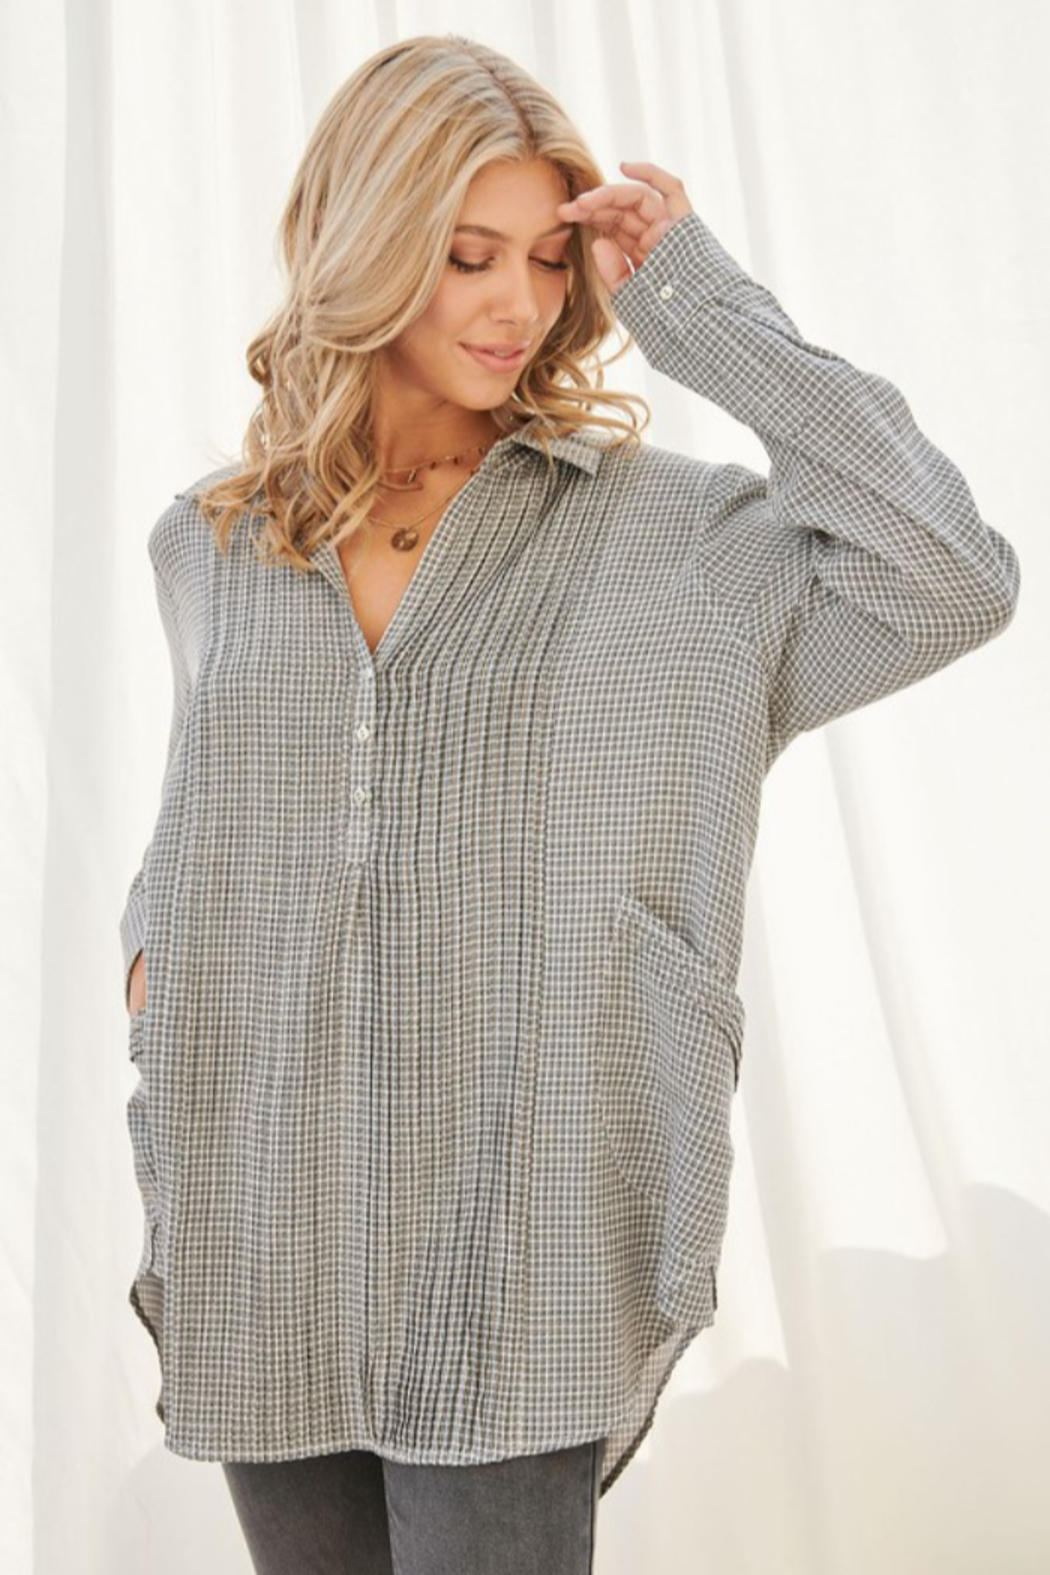 FSL Apparel Plaid Long Sleeve Collared Top - Main Image